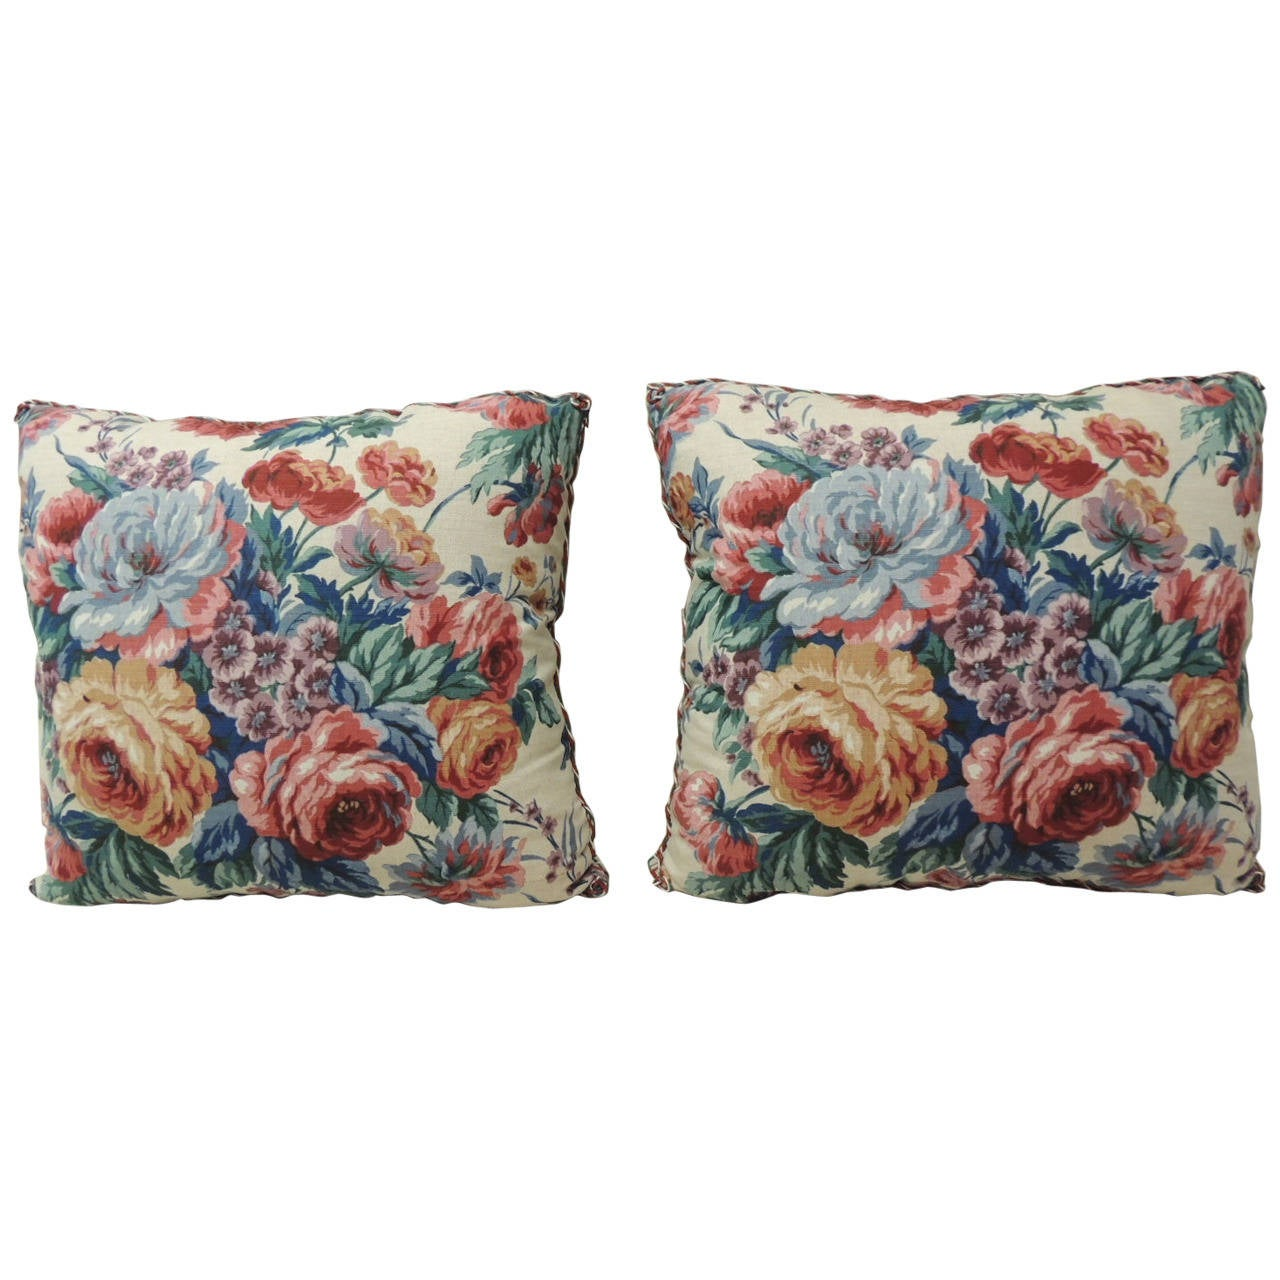 Pair of Floral Cabbage Roses Linen Decorative Pillows For Sale at 1stdibs